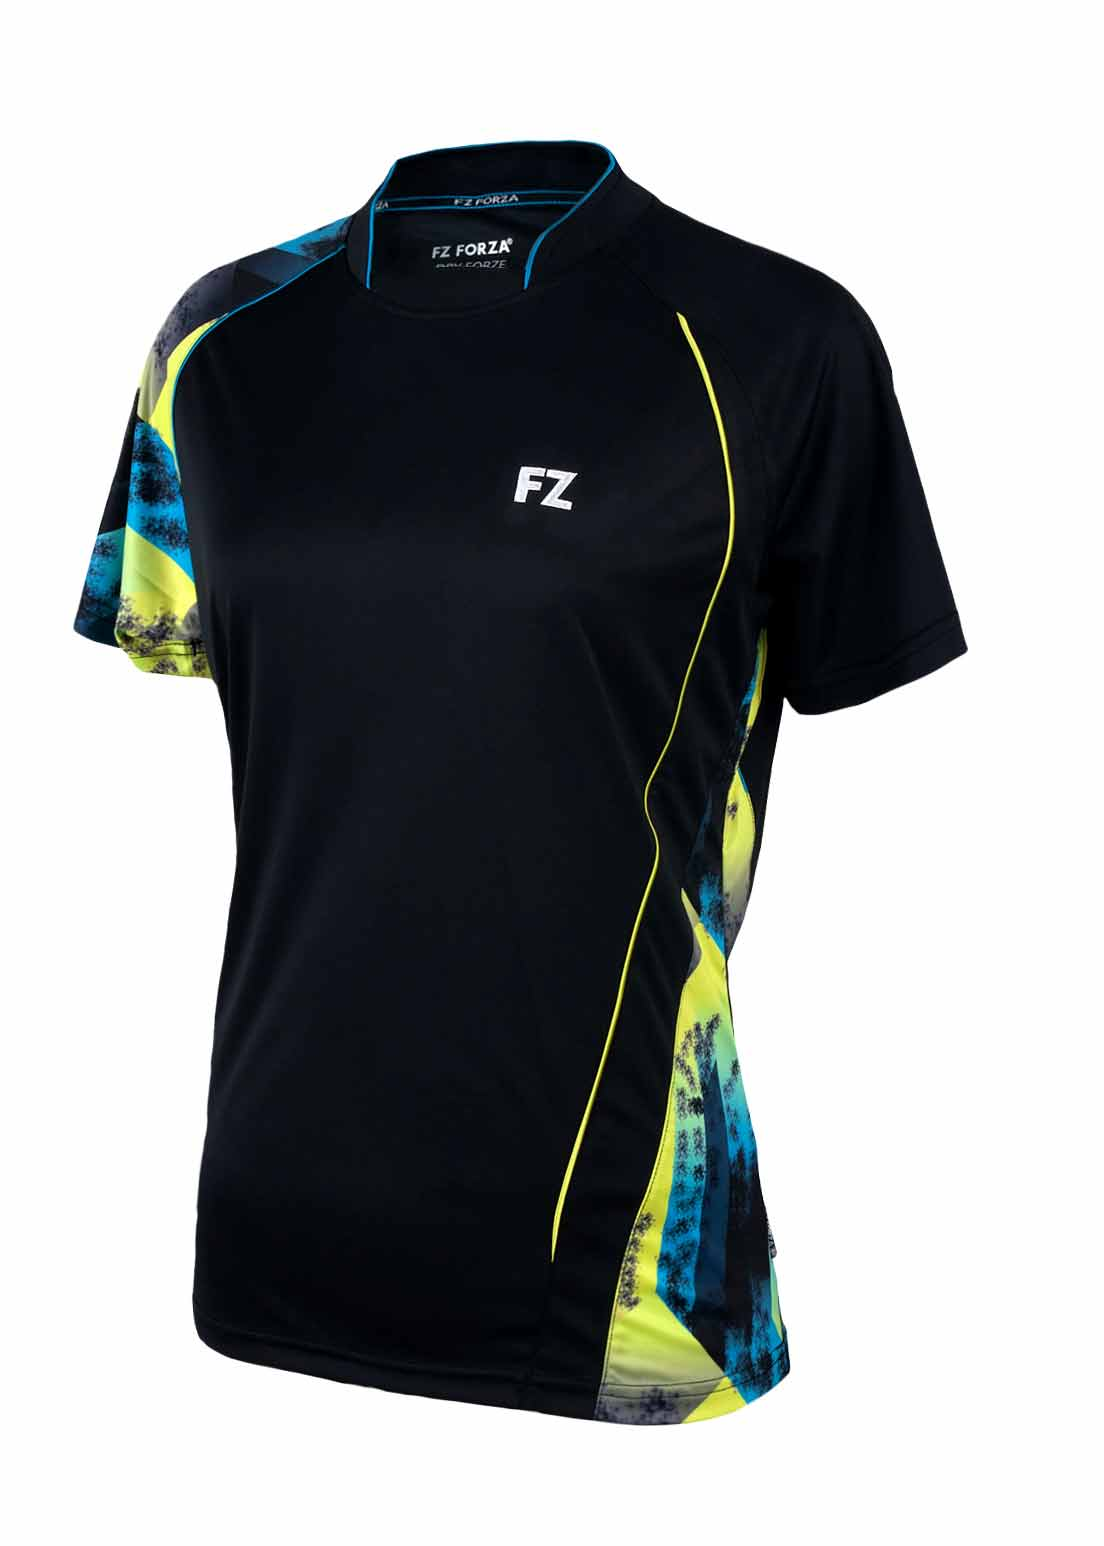 Forza molly t-shirt fra Forza fra billigsport24